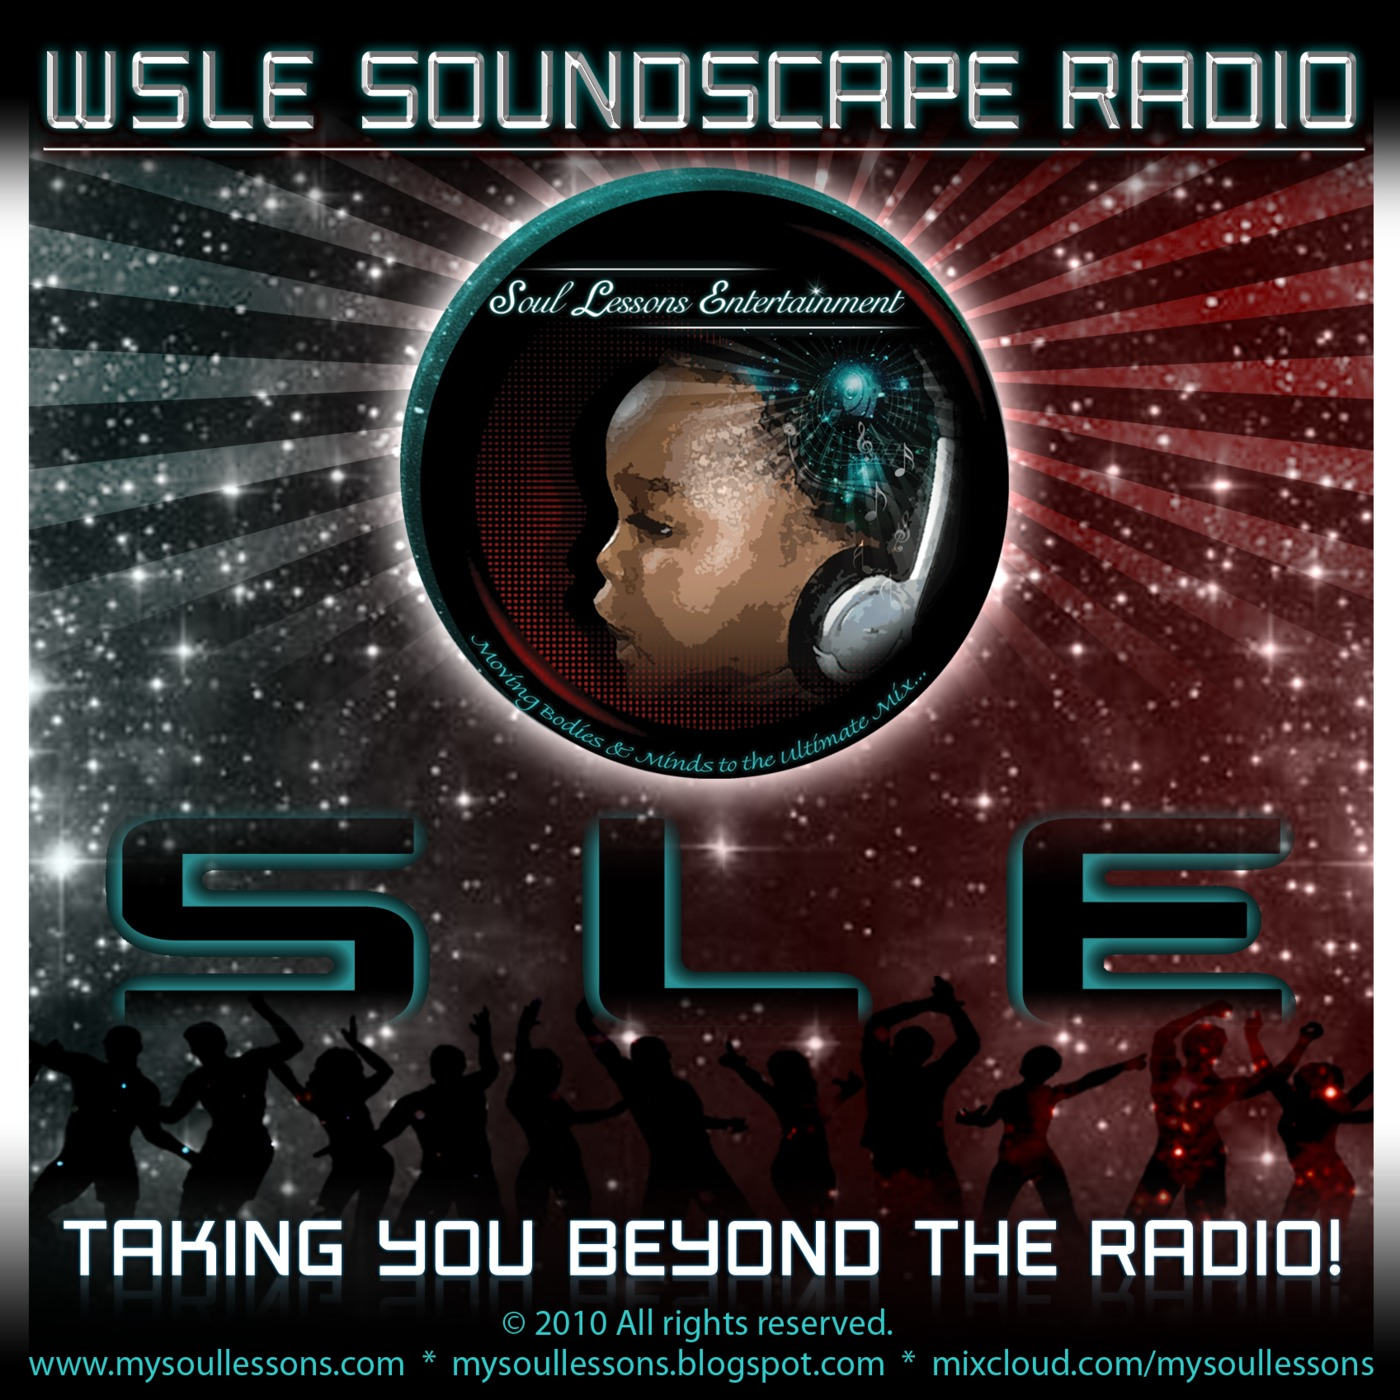 WSLE Soundscape Radio